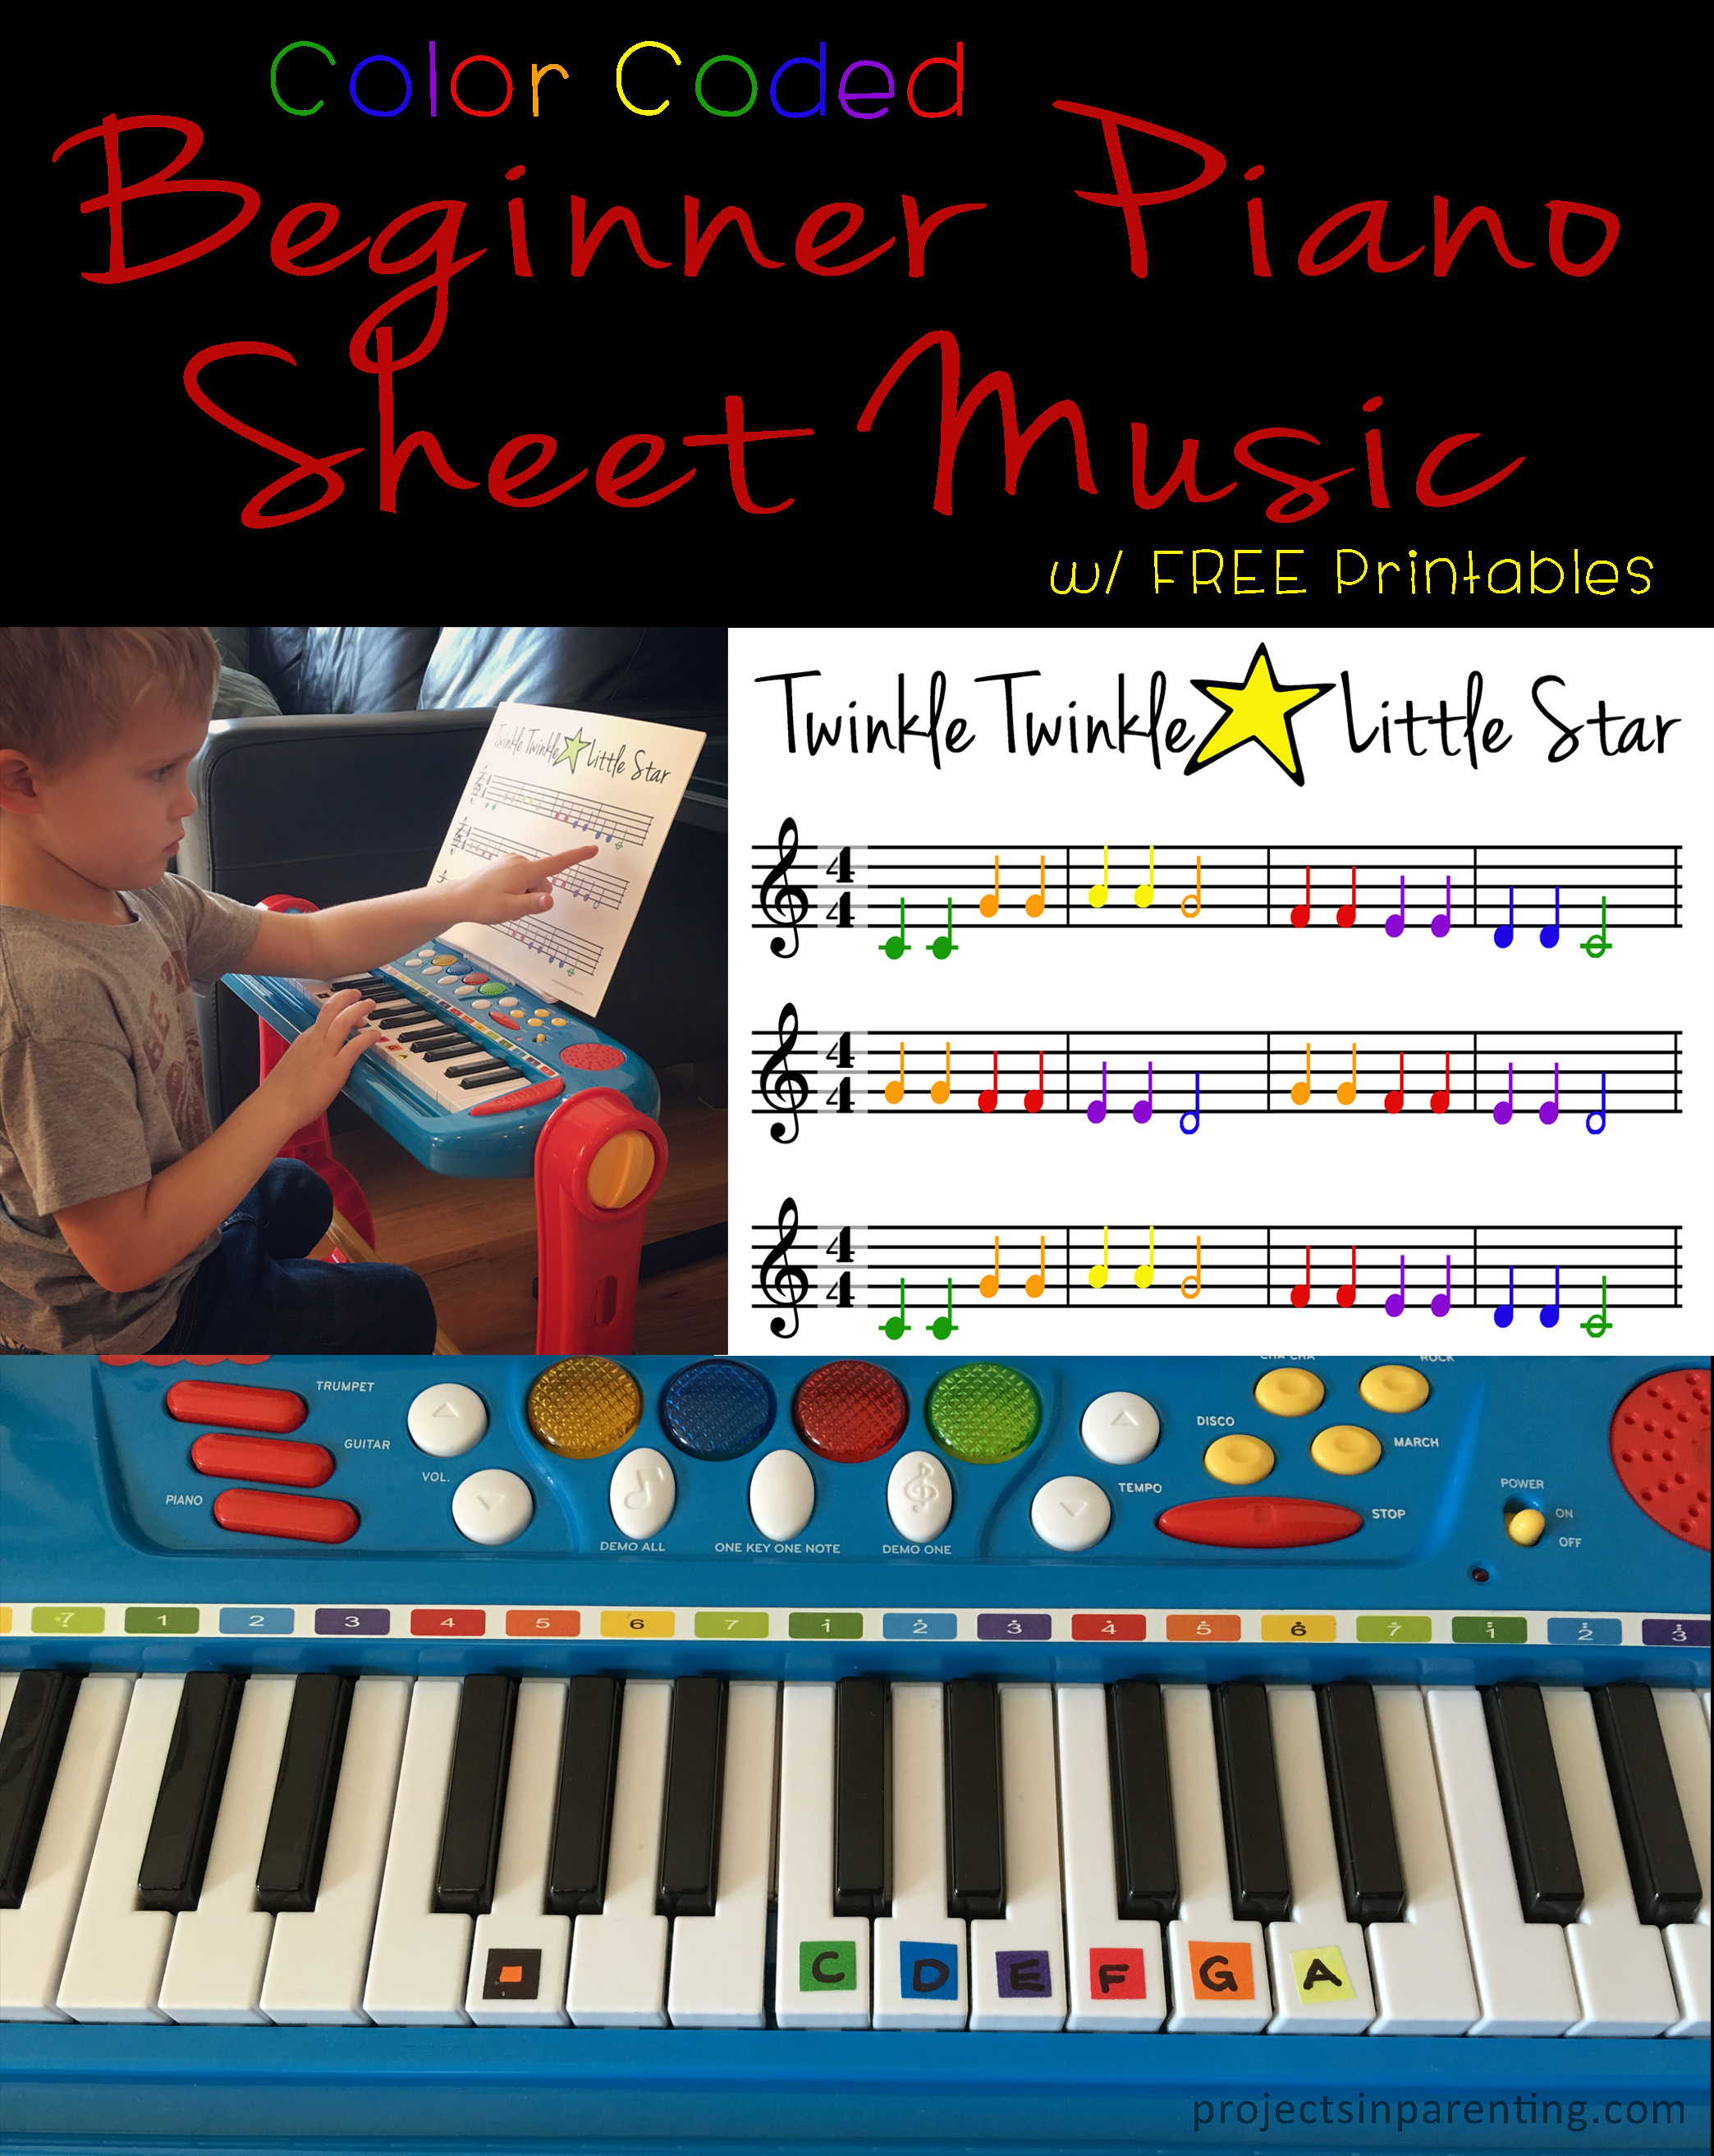 color-coded-beginner-piano-sheet-music-free-printables-projectsinparenting